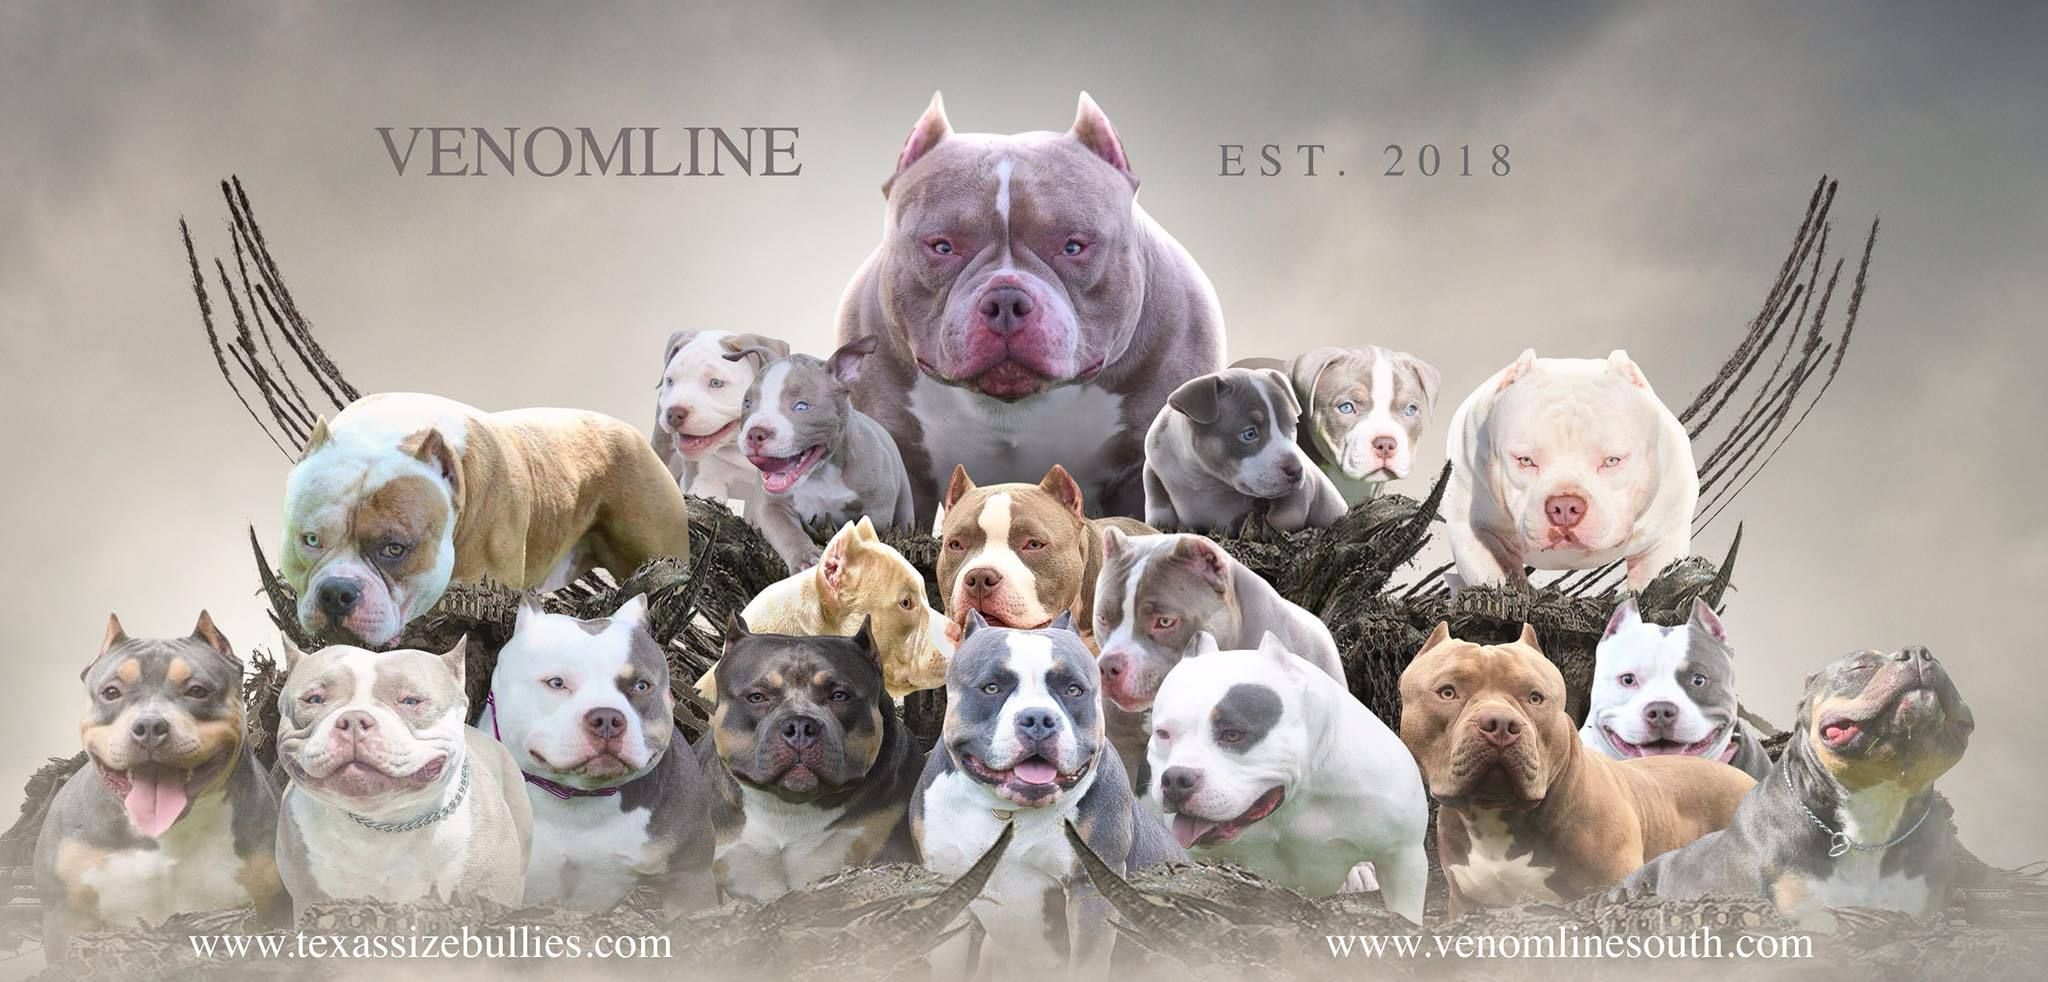 CHOOSING A STUD: SHOW DOGS & STUD DOGS IN THE AMERICAN BULLY